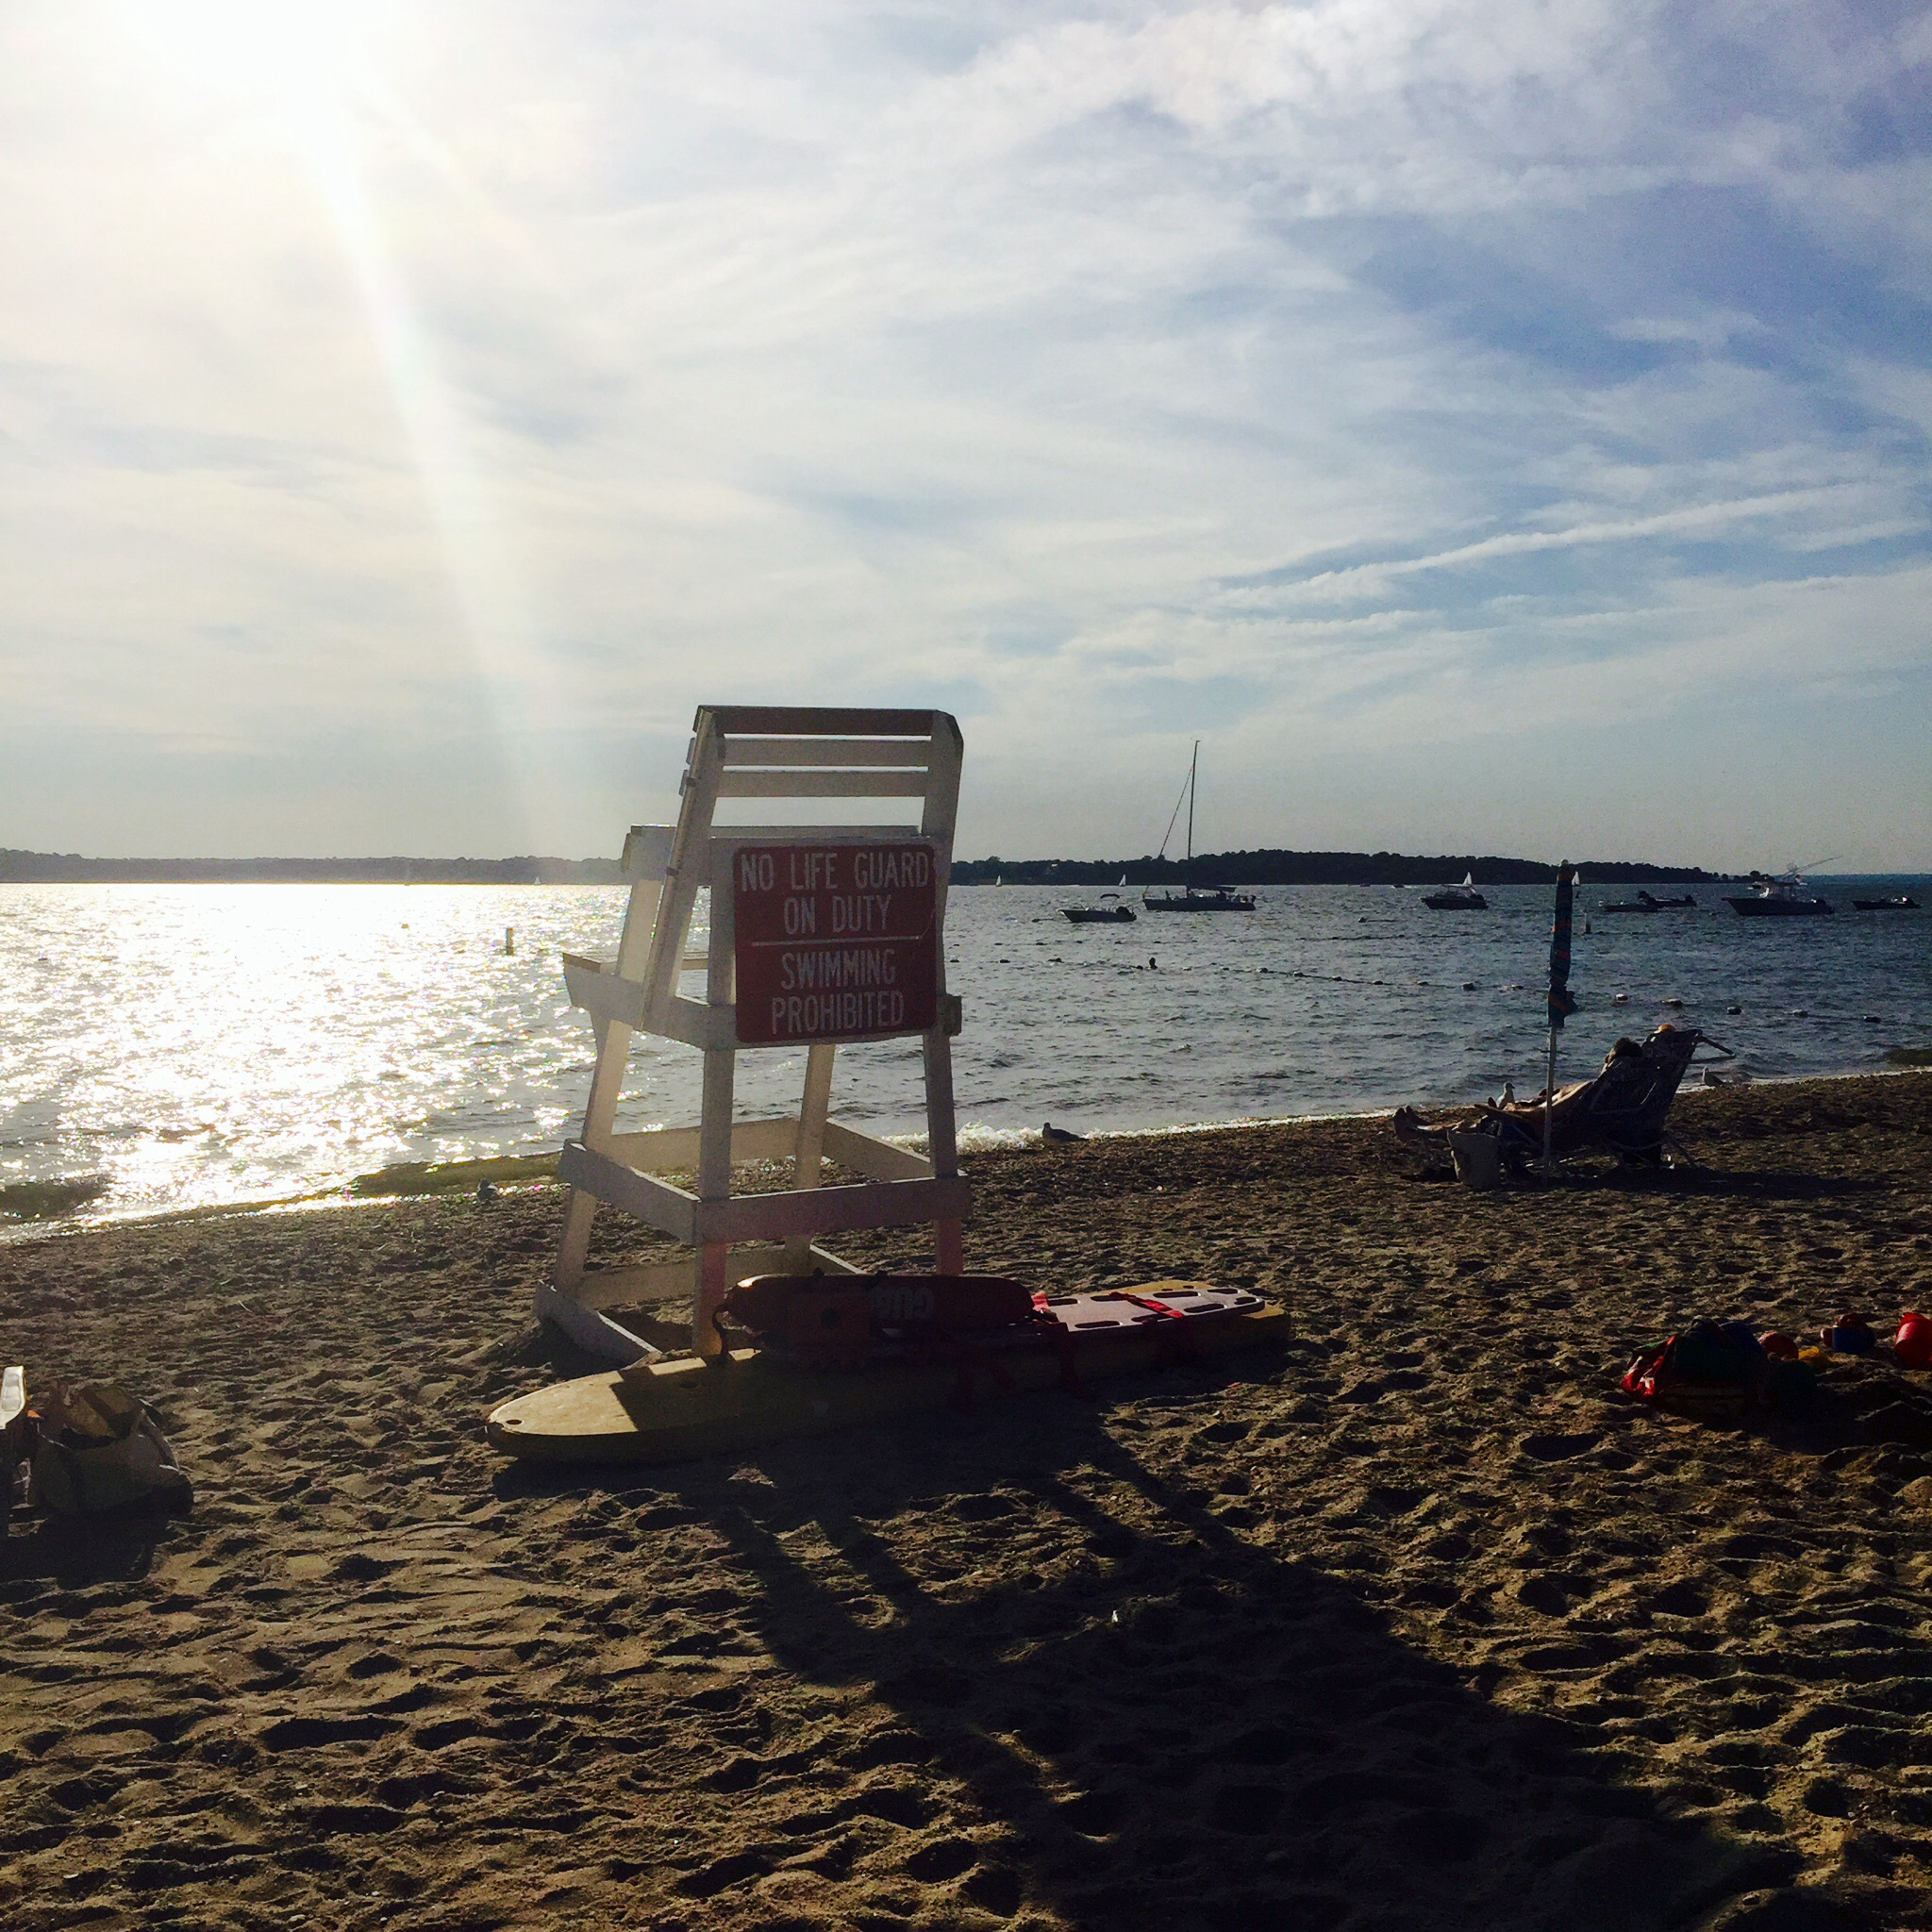 West Neck Beach, Long Island, NY